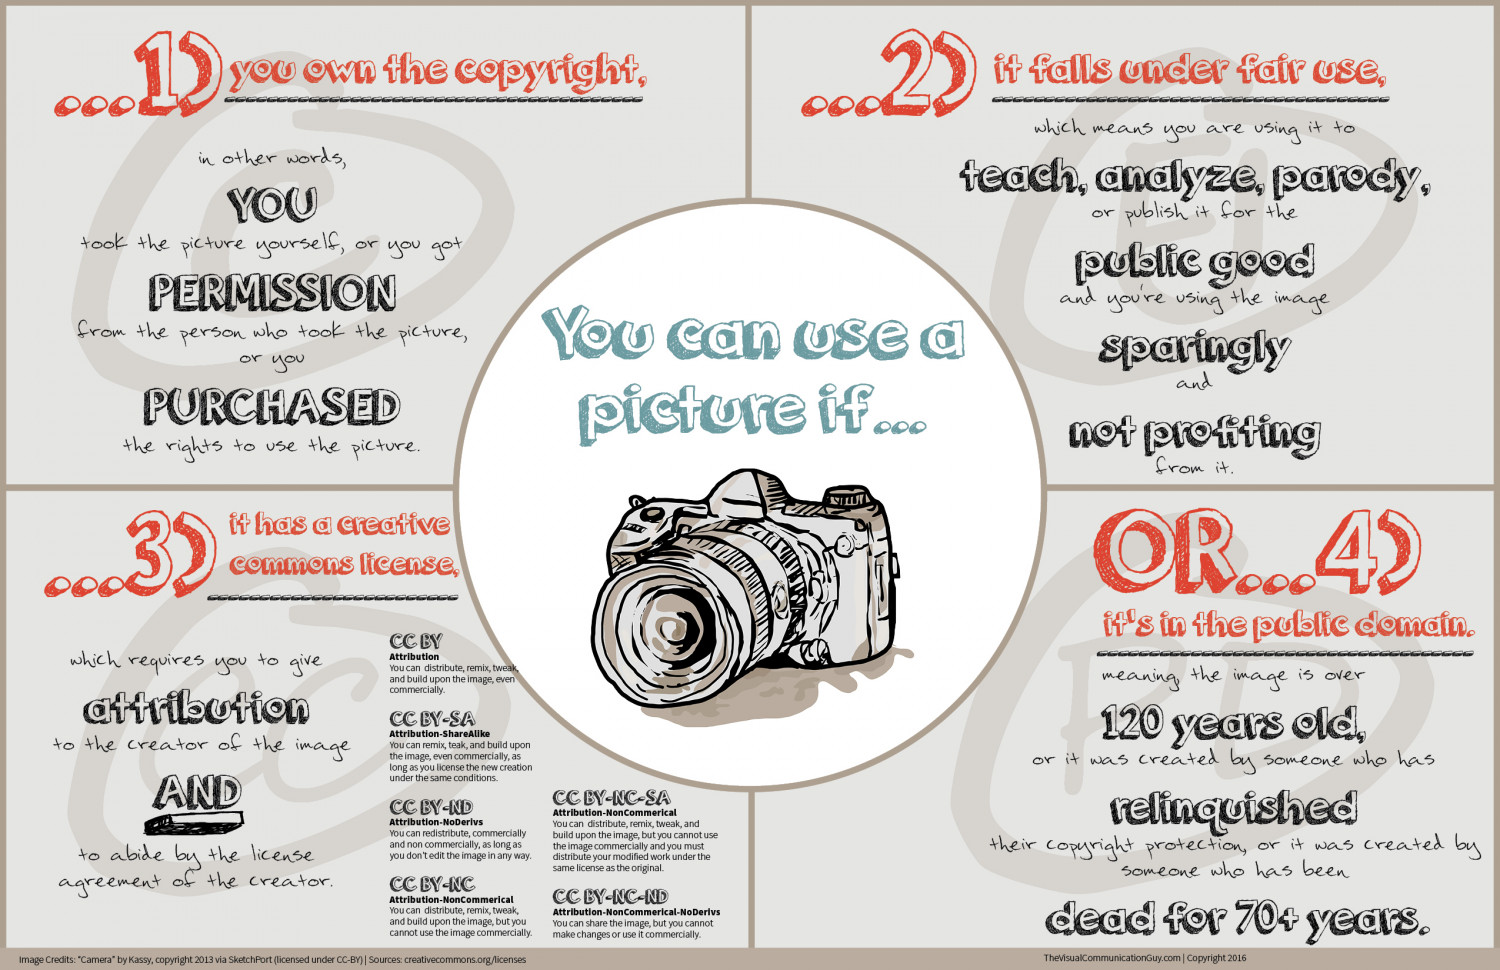 You Can Use a Picture If... Infographic